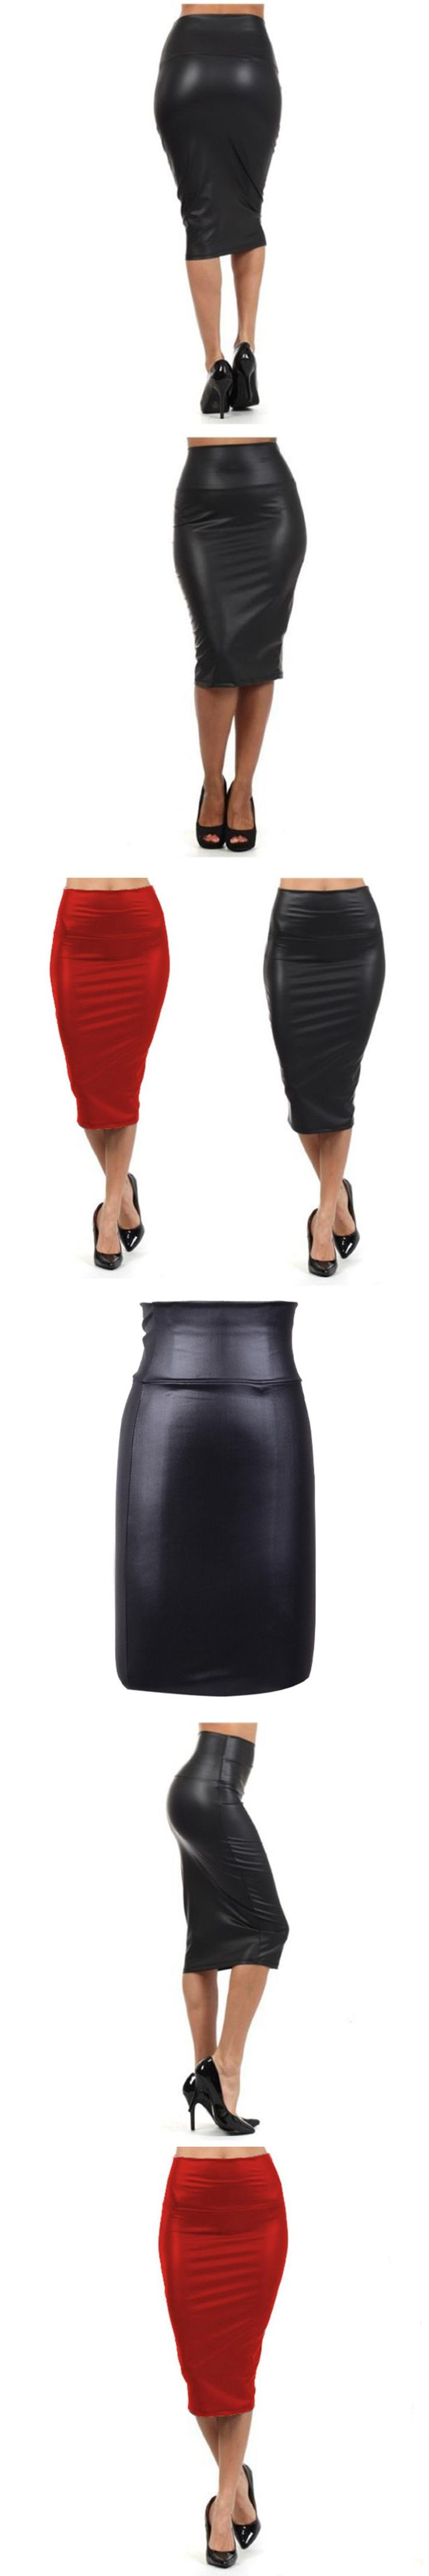 FANALA Pencil Leather Skirt Womens 2017 Autumn Red Pencil Skirts Women Plus Size High Waist black Leather Pencil Bodycon Skirt